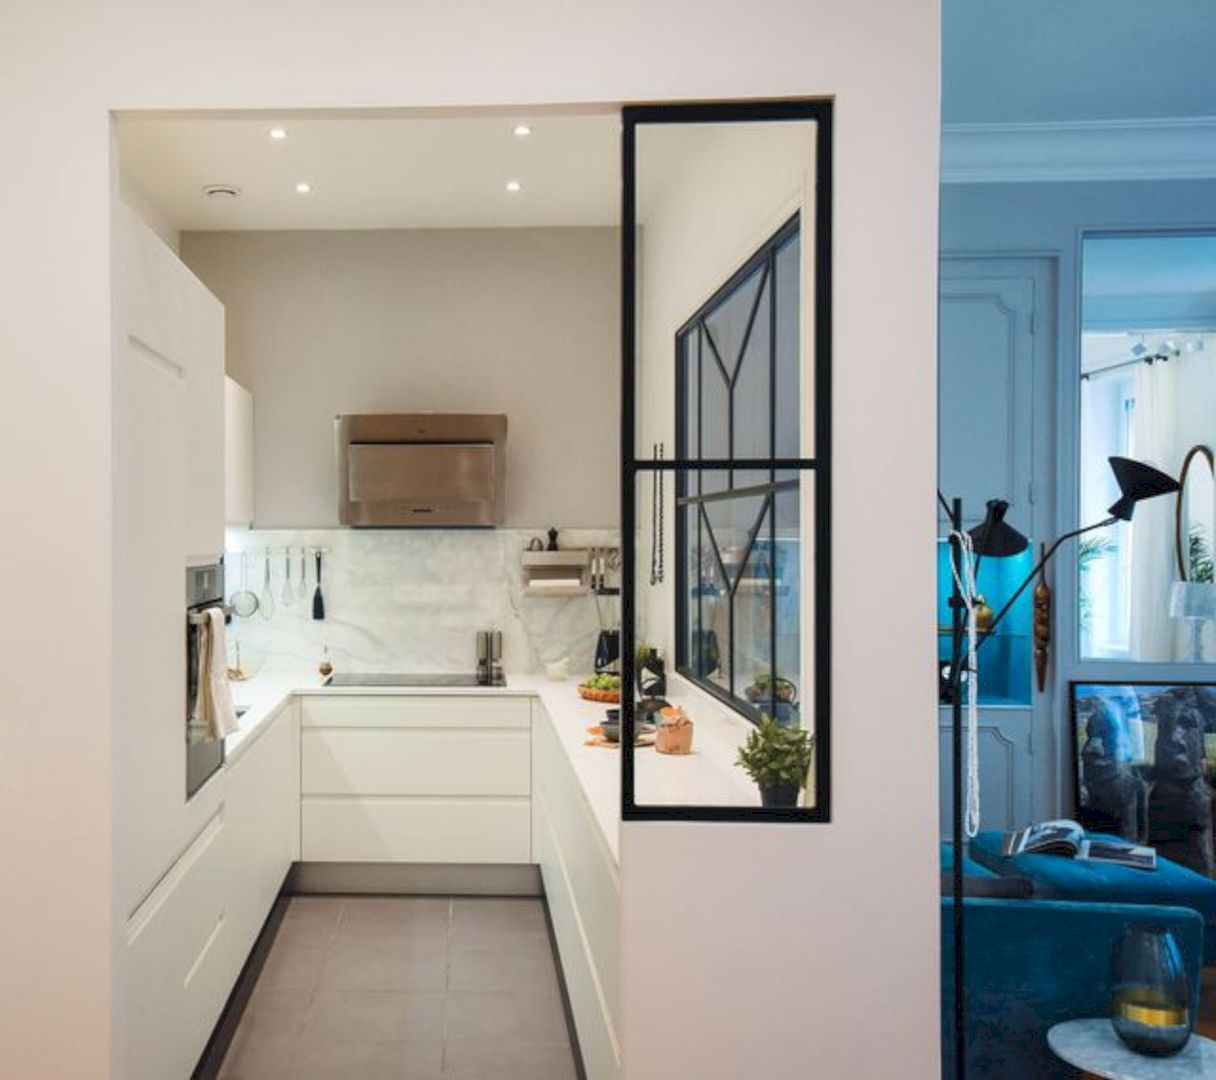 narrow and small kitchen, white bottom cabinet, white wall, white cabinet